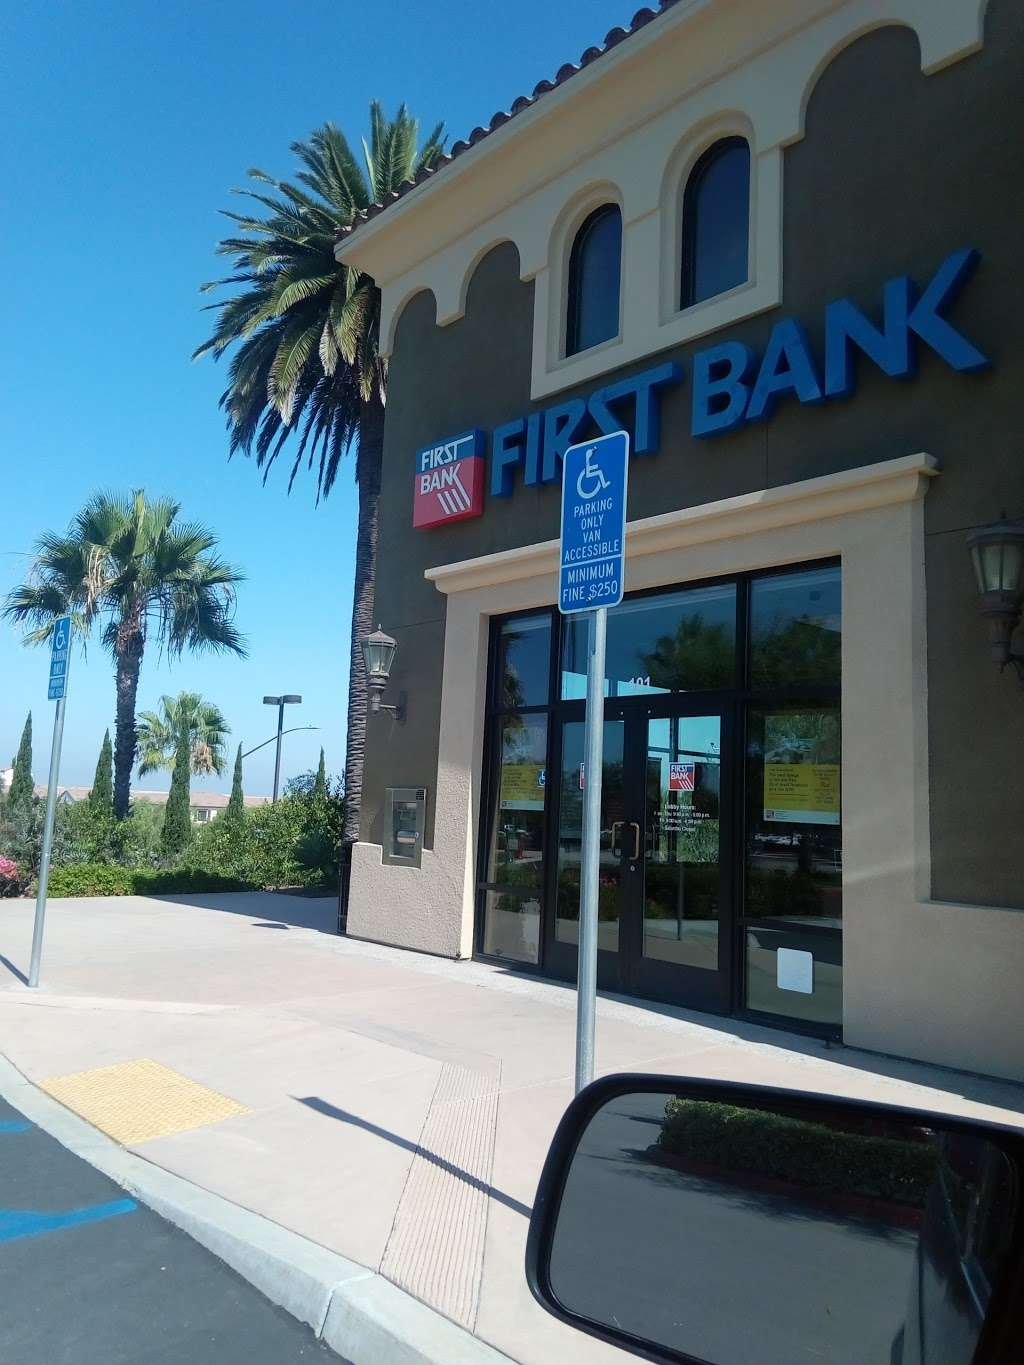 First Bank - bank  | Photo 6 of 6 | Address: 2314 Proctor Valley Rd Suite 101, Chula Vista, CA 91914, USA | Phone: (619) 656-5278